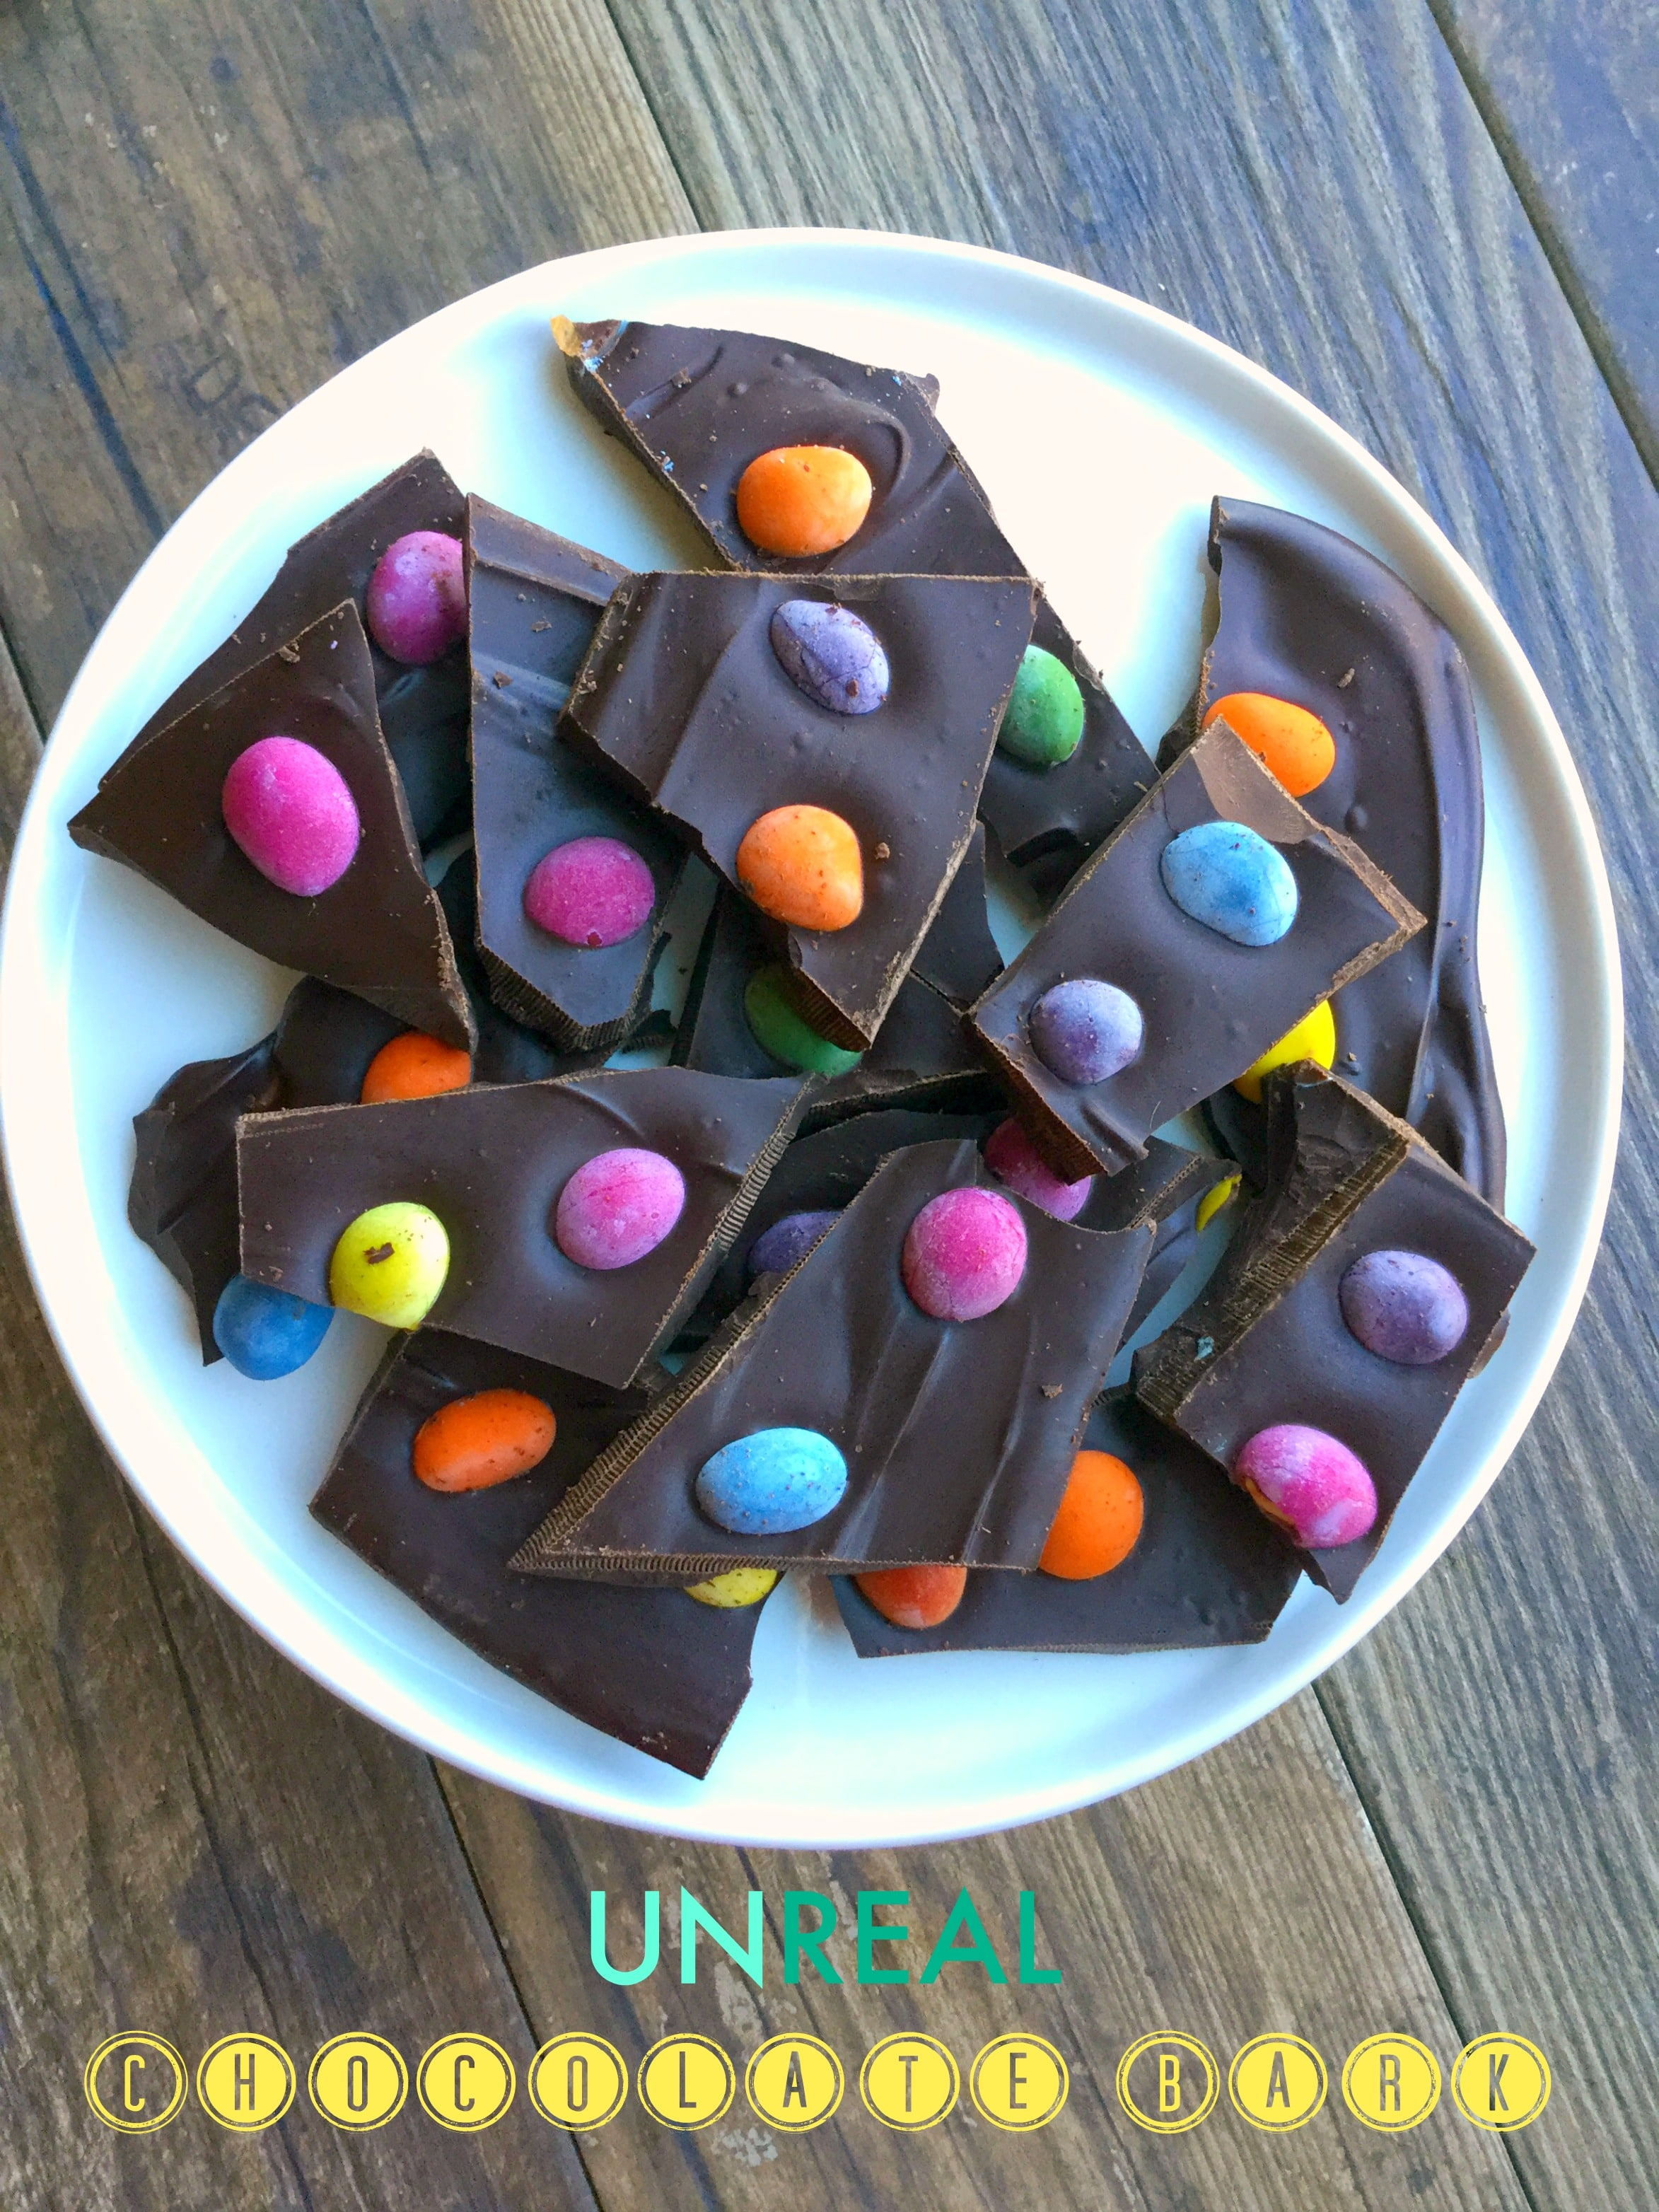 There is now a better way to eat your chocolate and your candy. I am happy to share the UNREAL candy through this special yummy recipe